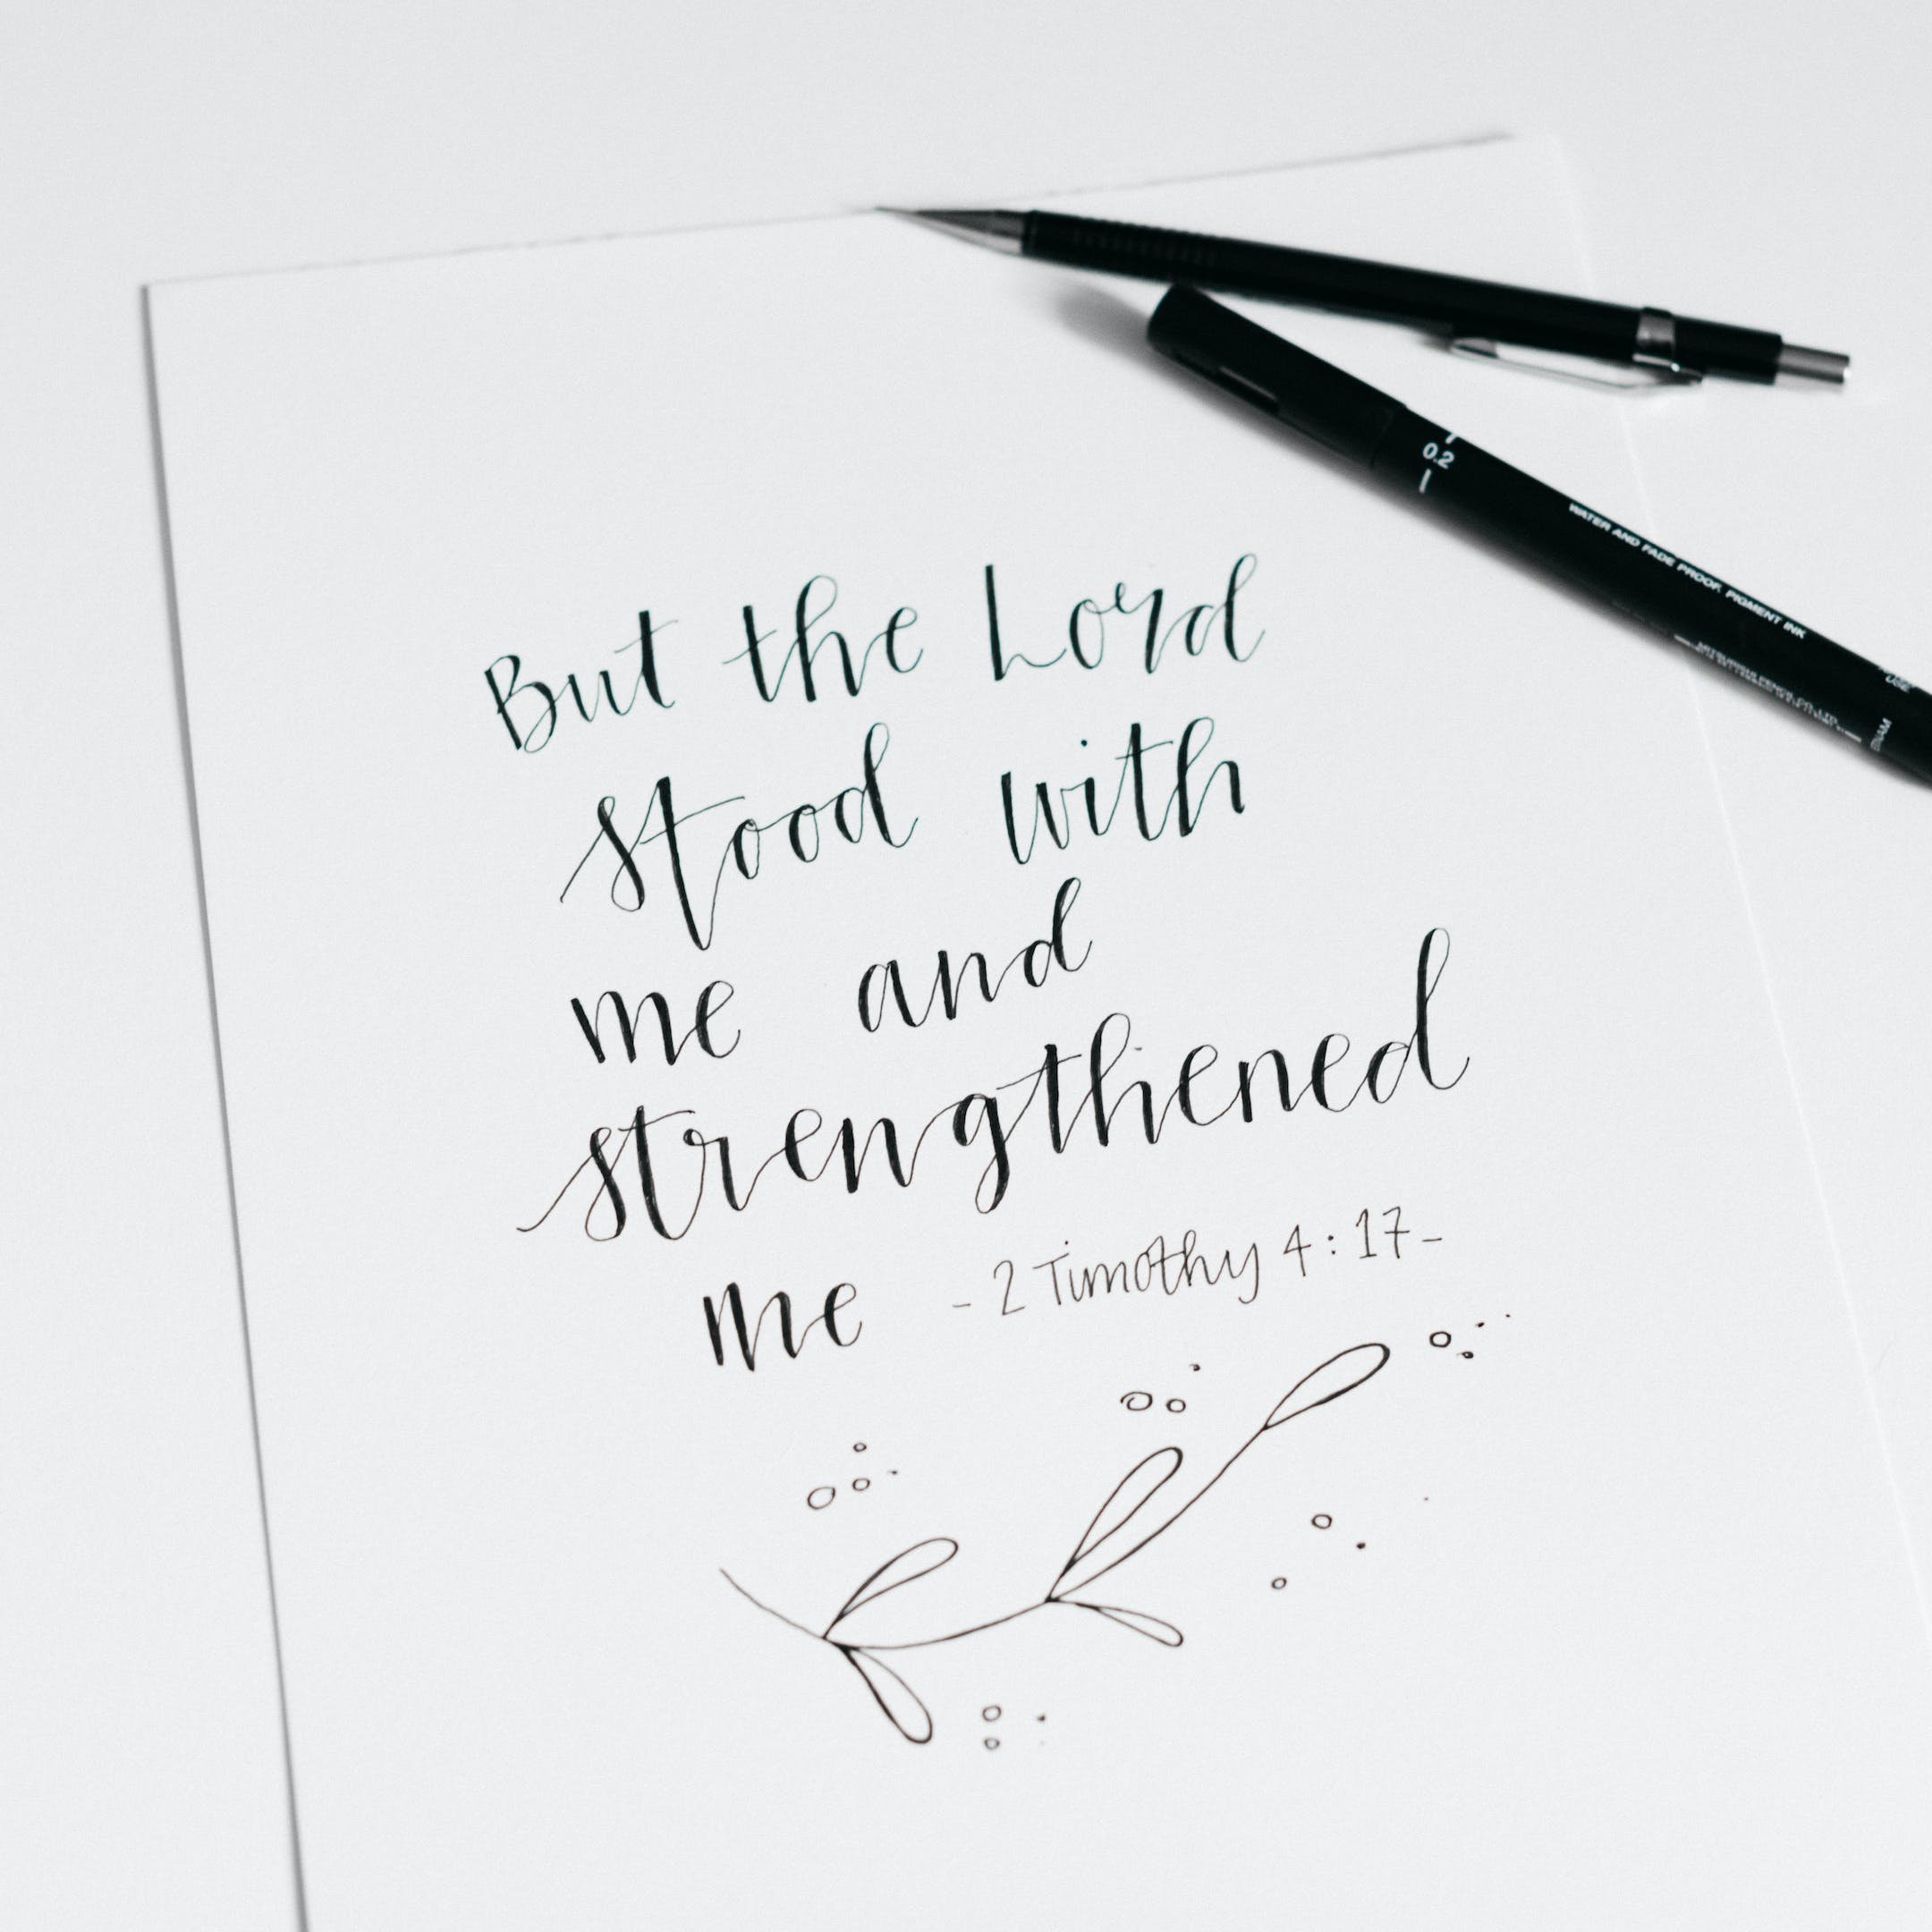 2 Timothy 4:17 Calligraphy Print - The Lord Stood With Me - Kate Hanks Art